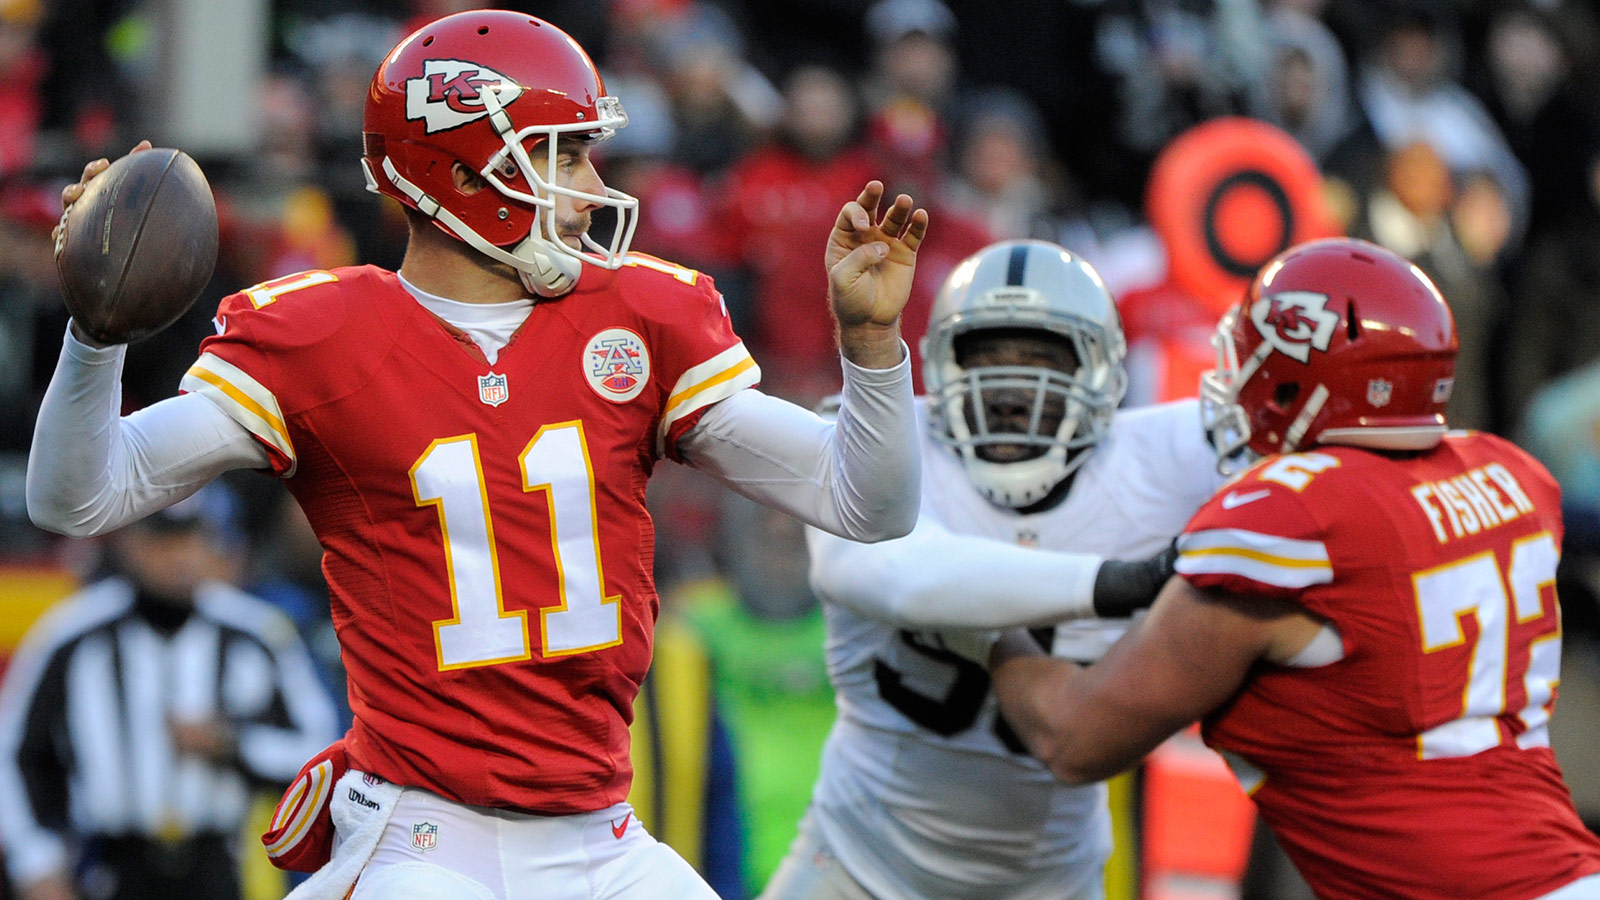 Chiefs beat Raiders 23-17, head into playoffs on a 10-game roll